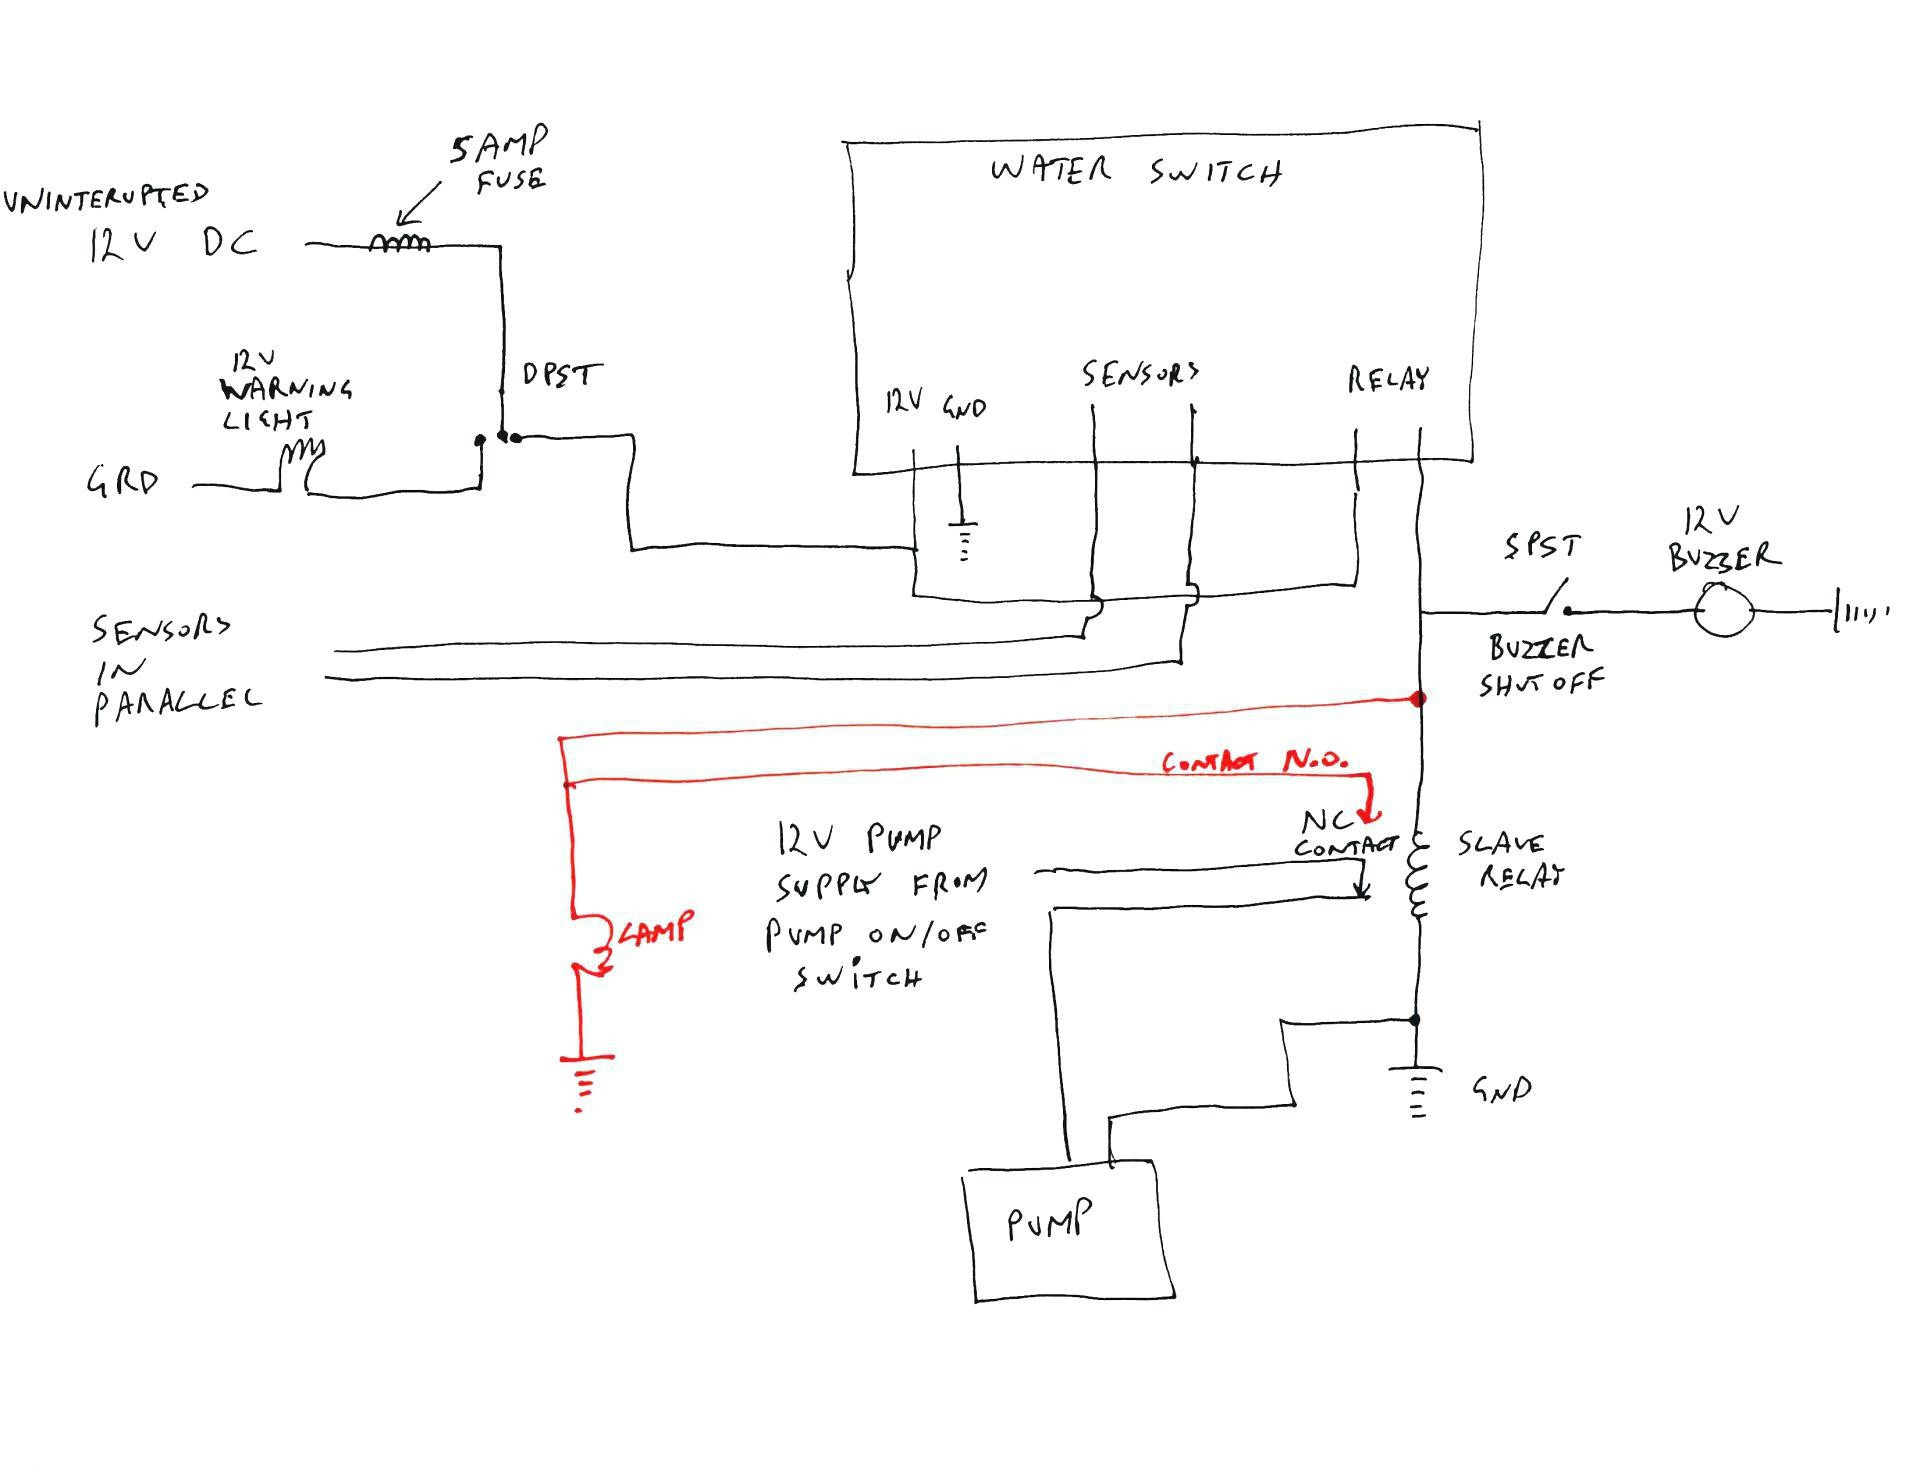 Electric Furnace Sequencer - Facias - Coleman Electric Furnace Wiring Diagram